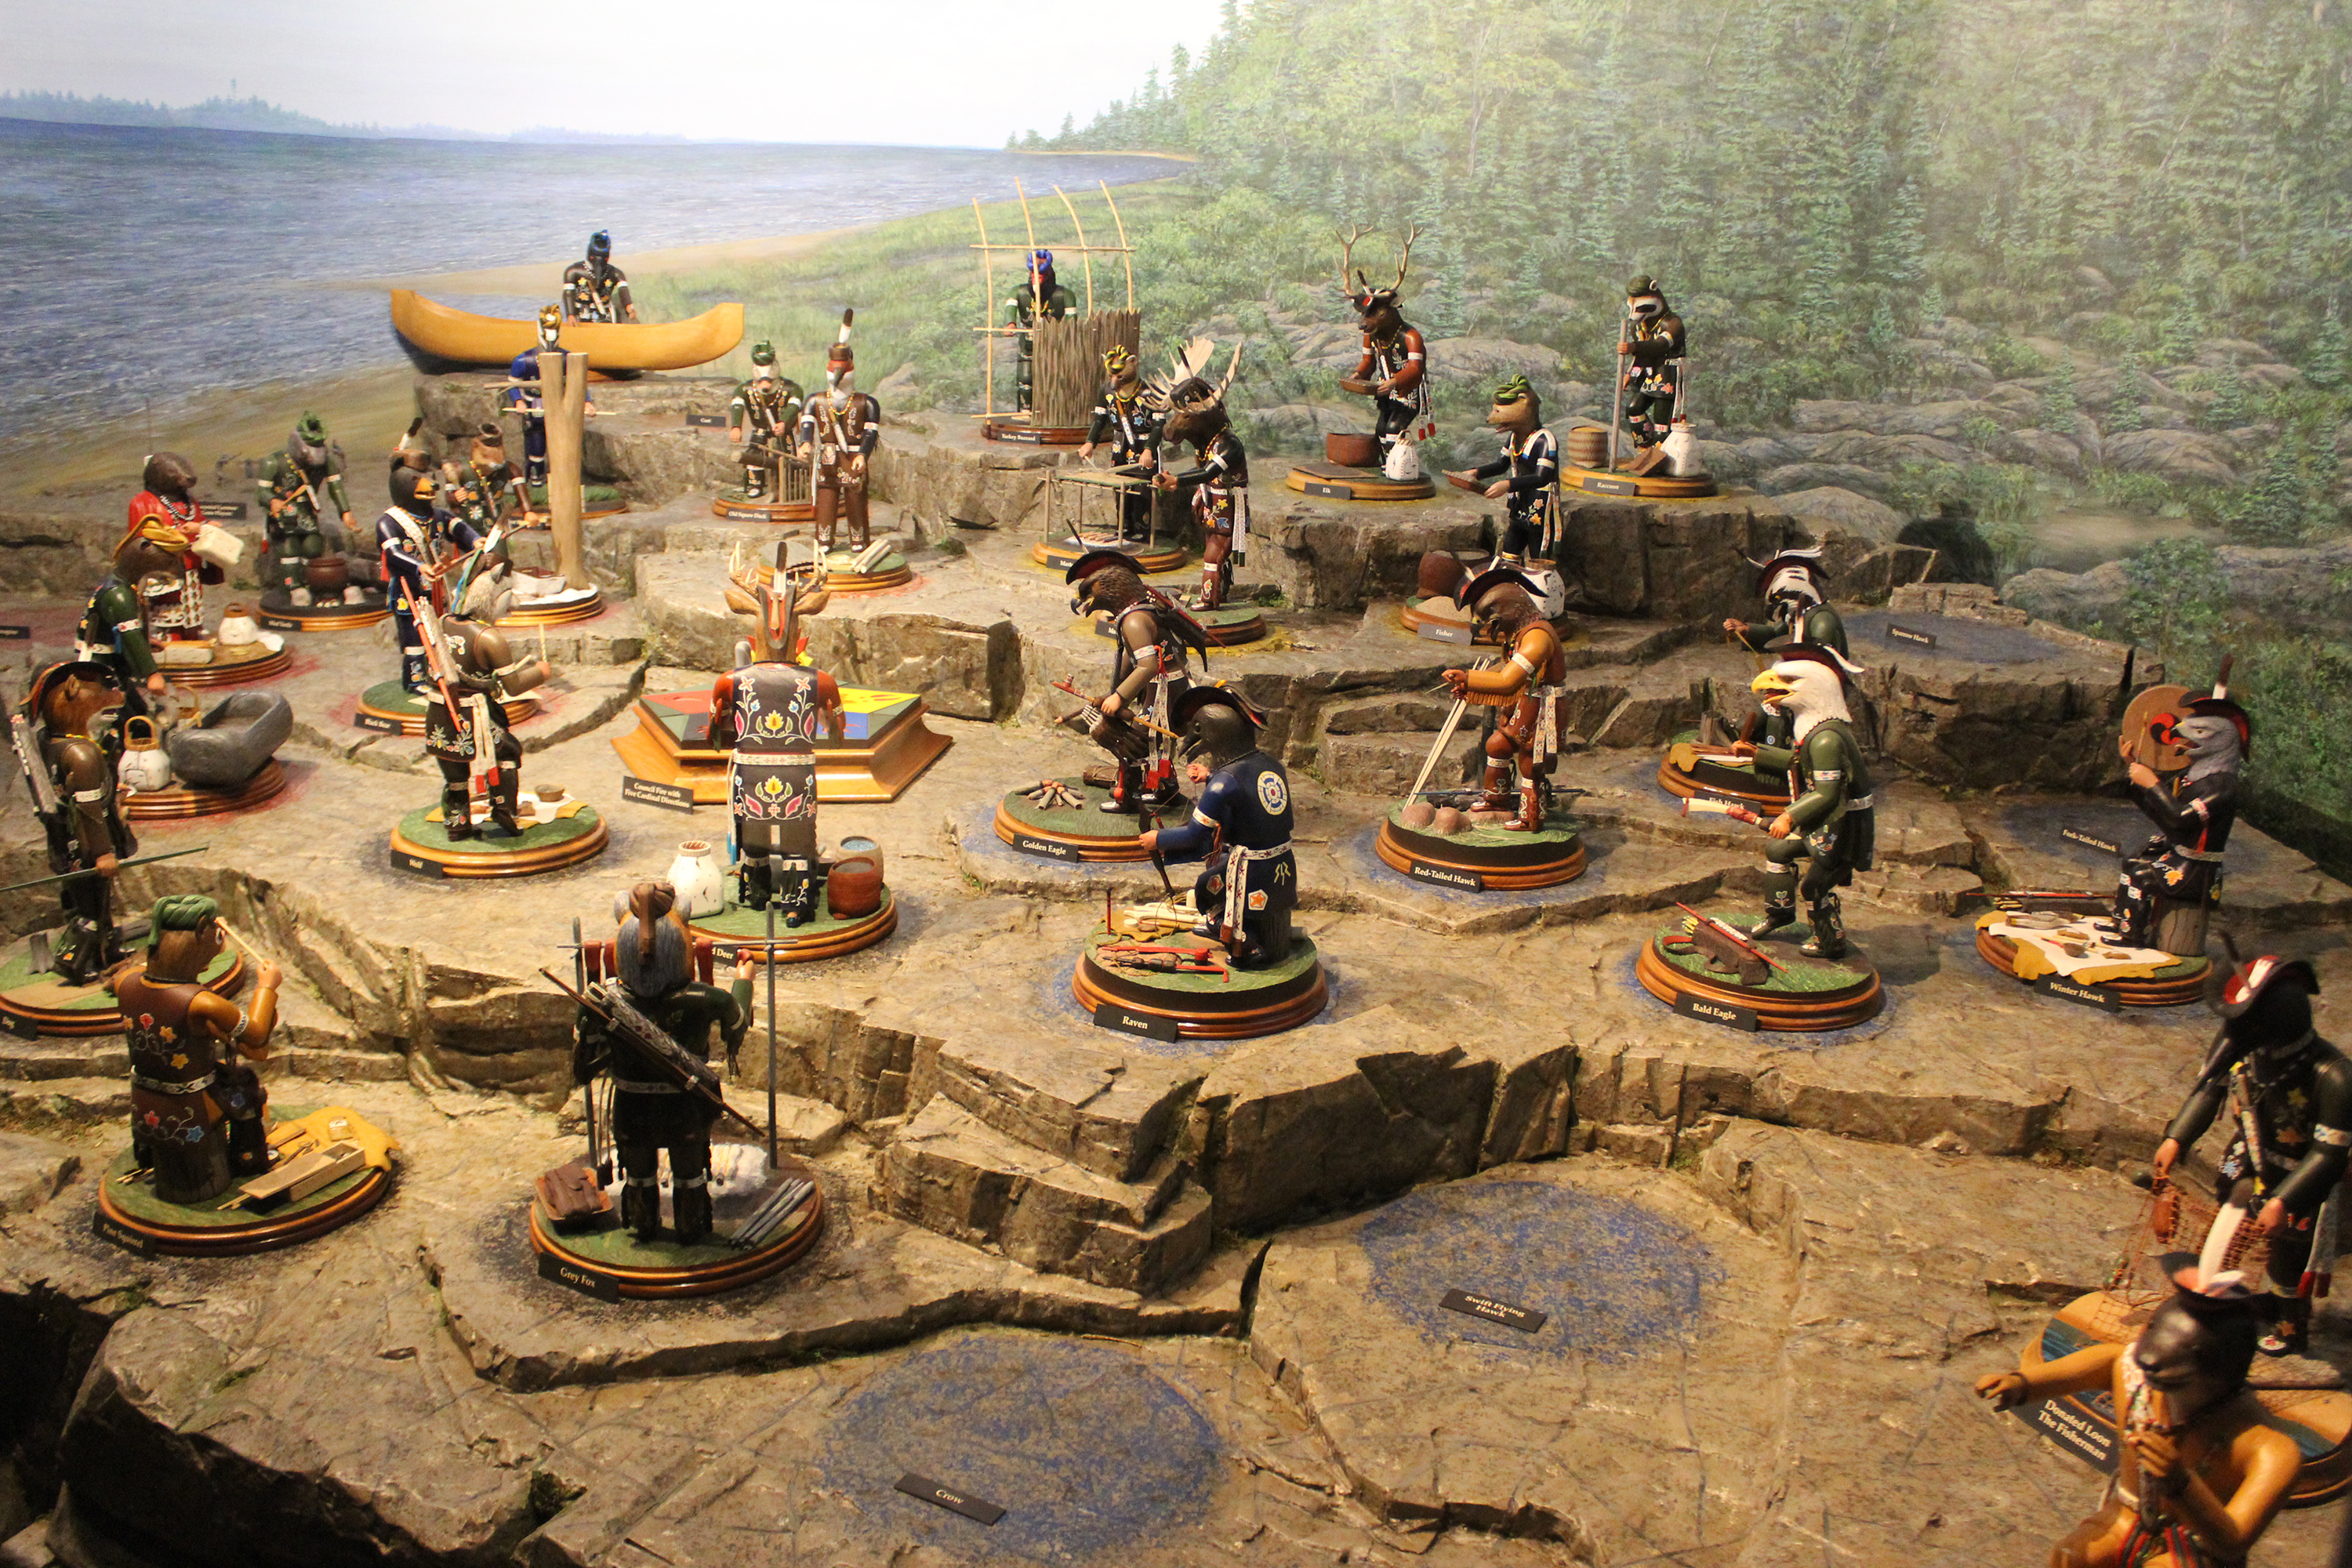 The full display of the Menominee Clans Story at Oshkosh Public Museum showcases over 30 wood figures depicting the various tribal clans. After a delay in 2020 due to the pandemic, the exhibit opened to great success on June 5.(Lee Pulaski   NEW Media)